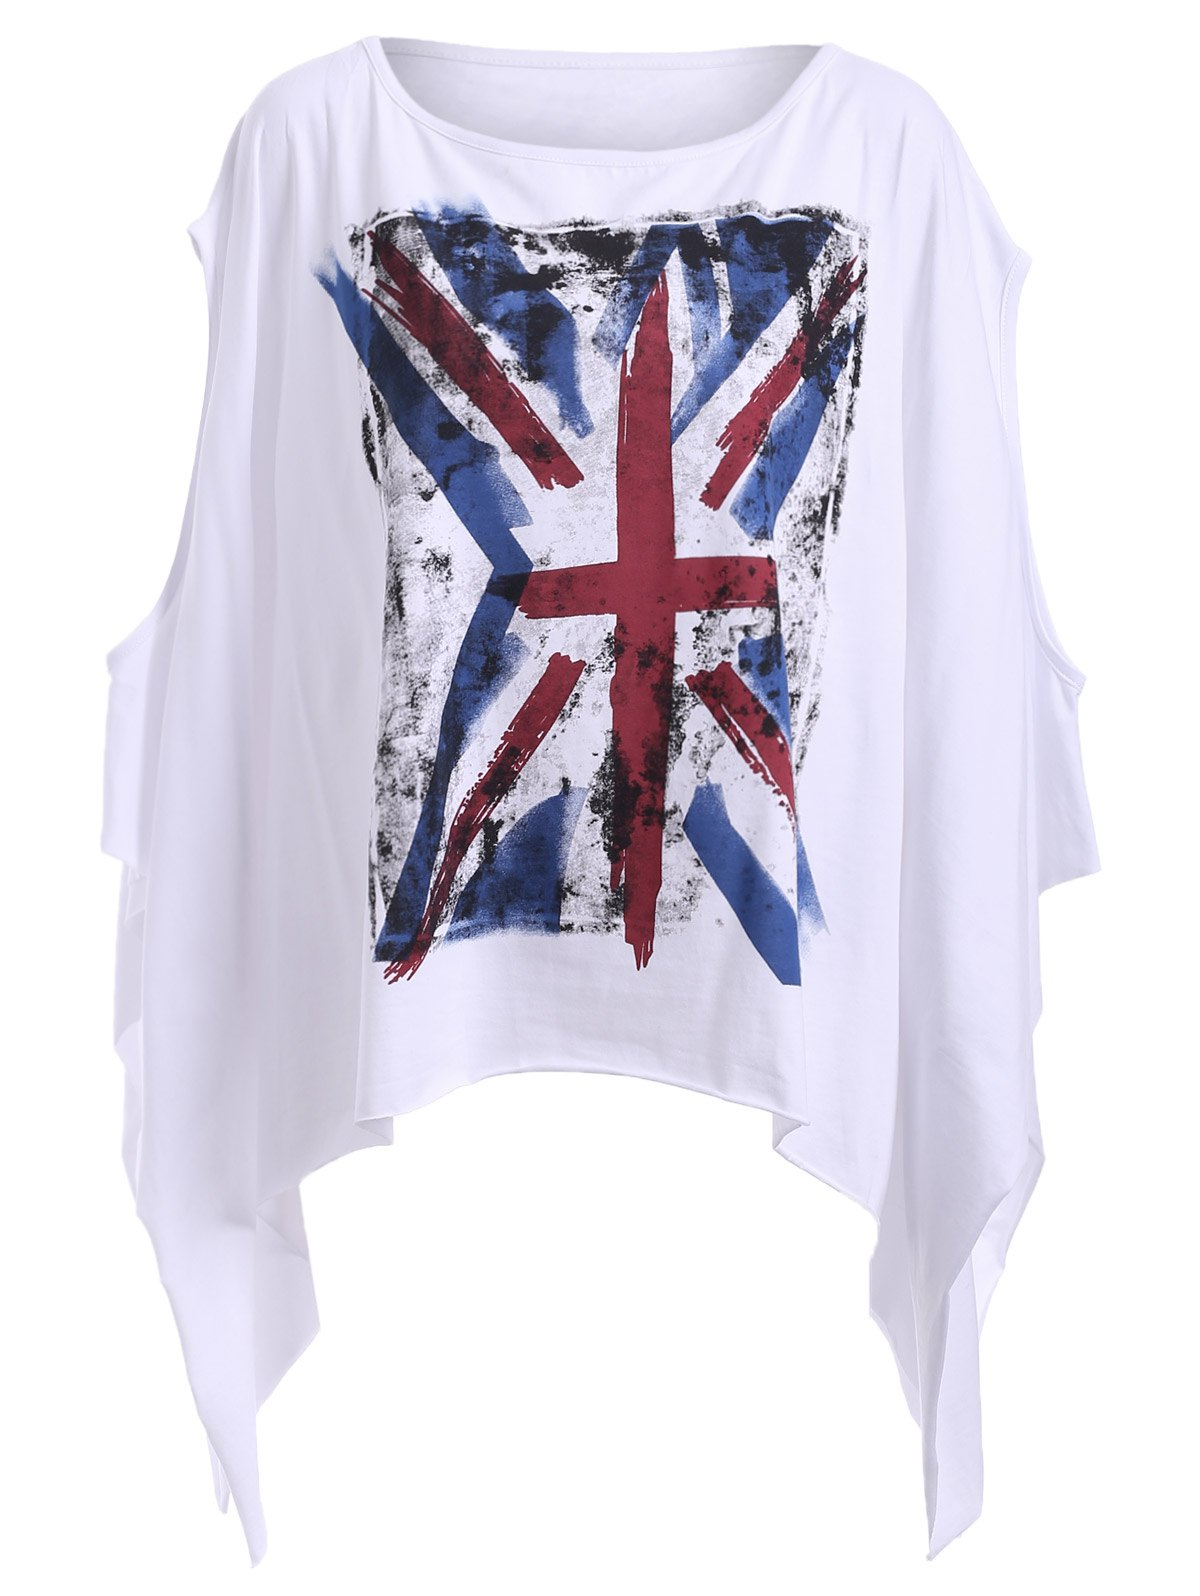 Chic Round Neck Flag Print Asymmetrical Cut Out Women's T-Shirt